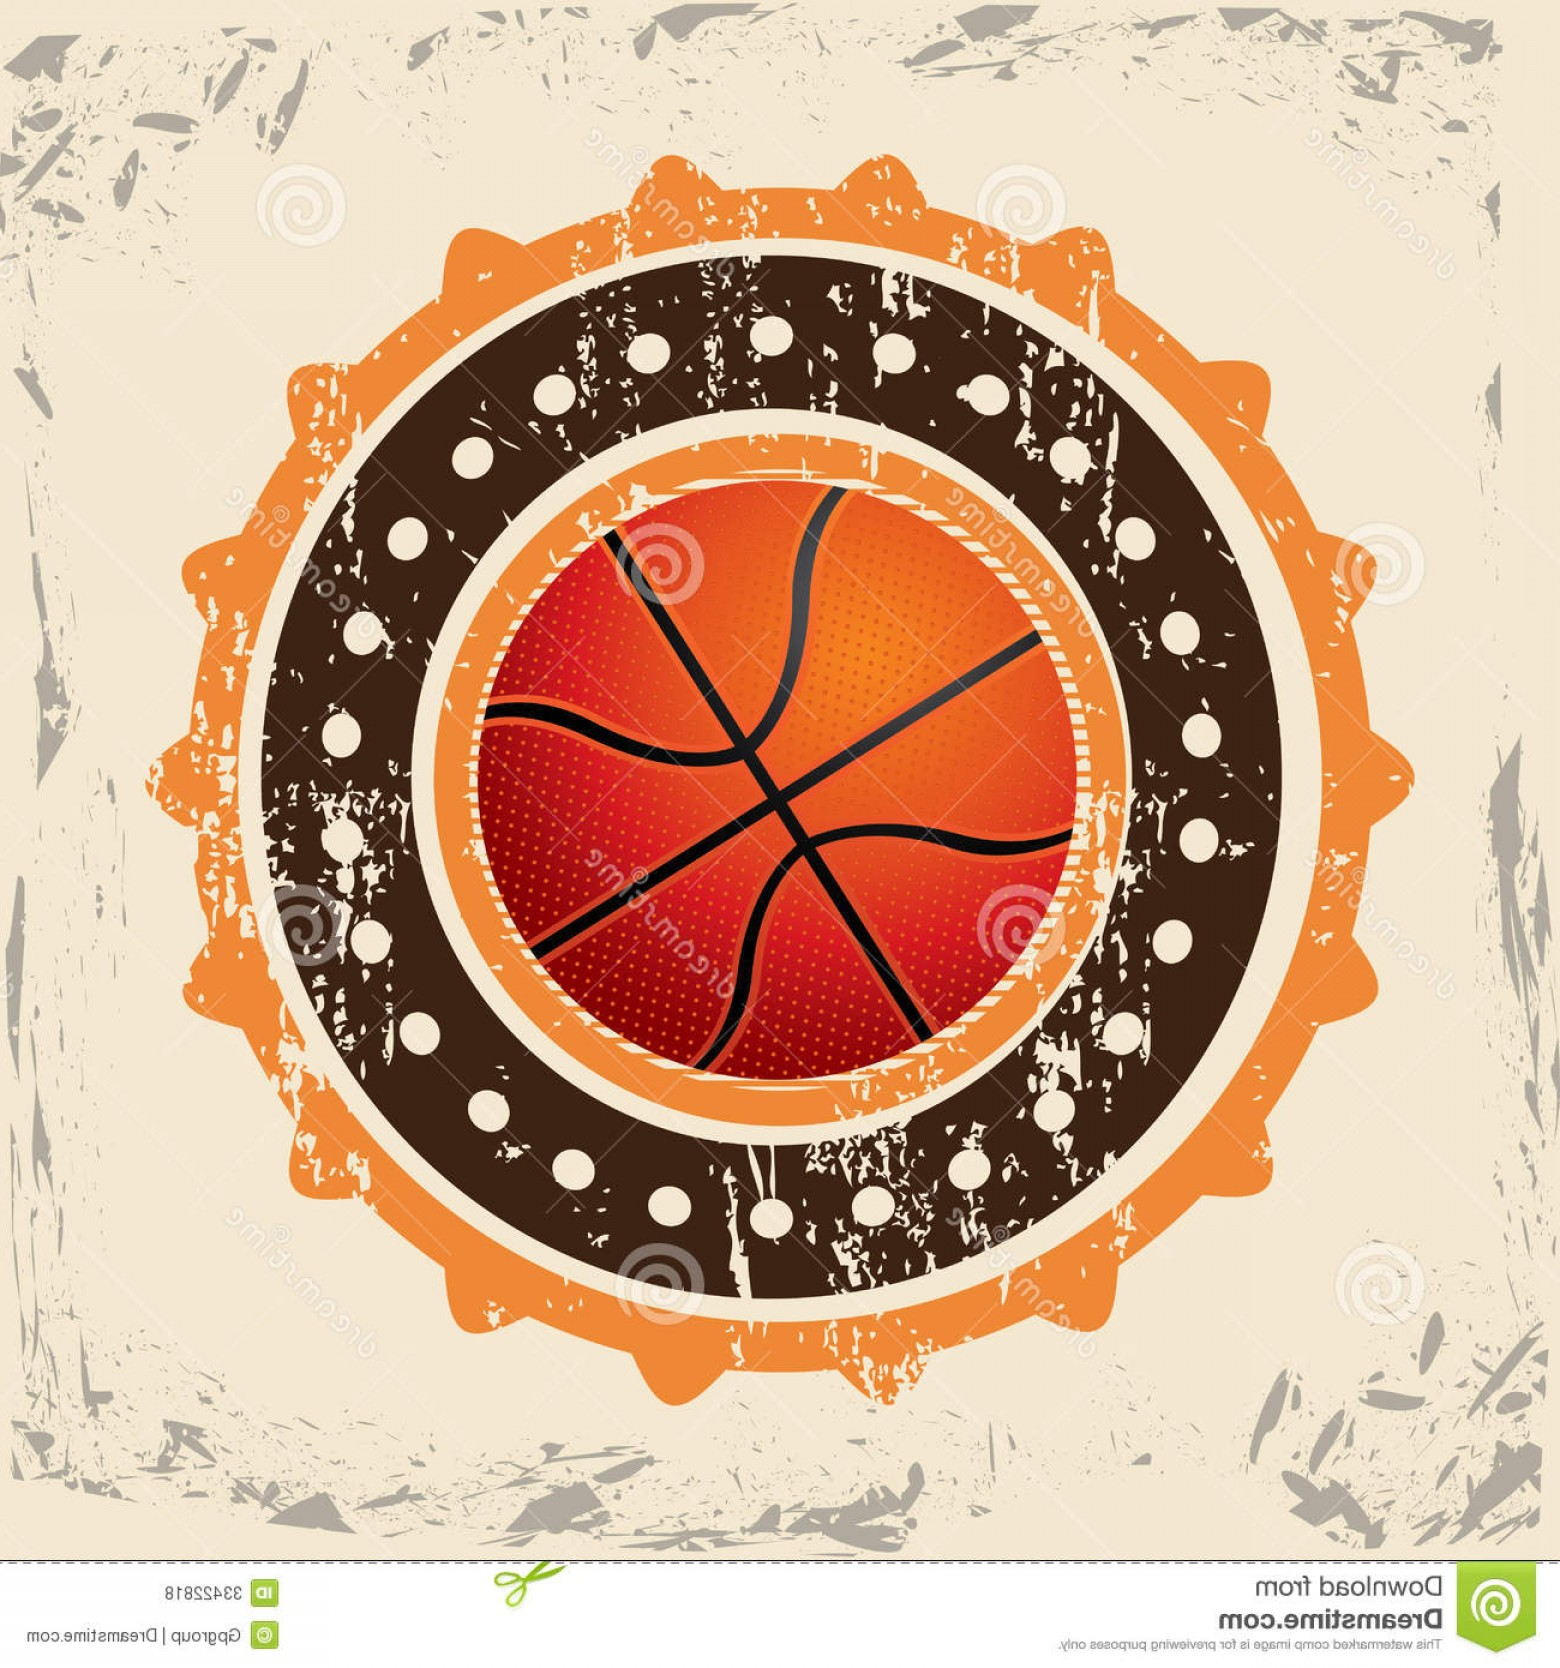 Vintage Basketball Vector: Royalty Free Stock Photos Basketball Design Over Vintage Background Vector Illustration Image